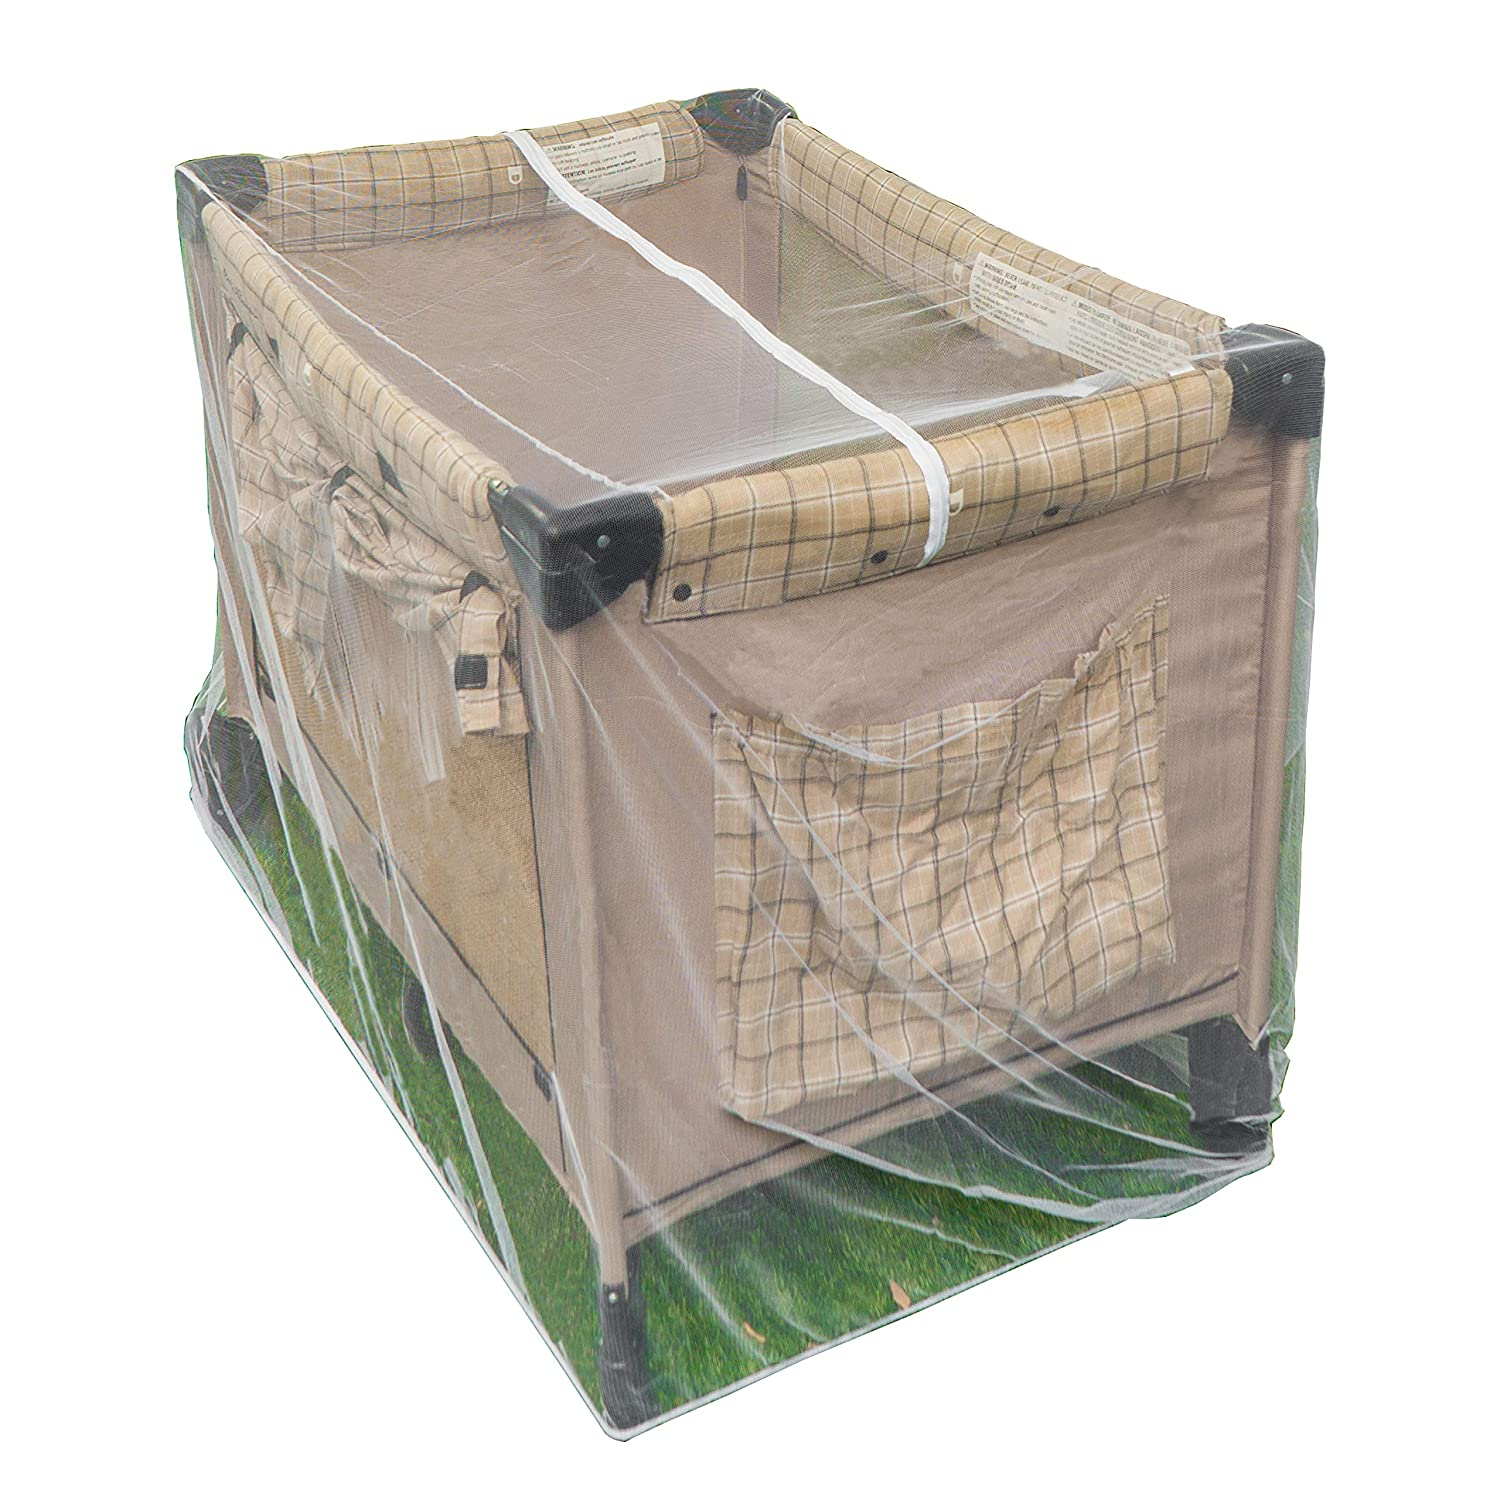 Pack n Play Mosquito Net with Zippers - Fits Baby Crib, Stroller and Playpen - Universal Size Portable Durable Mesh Netting with Elastic - Complete with Storage Bag Bonus Vandal Eh Industries